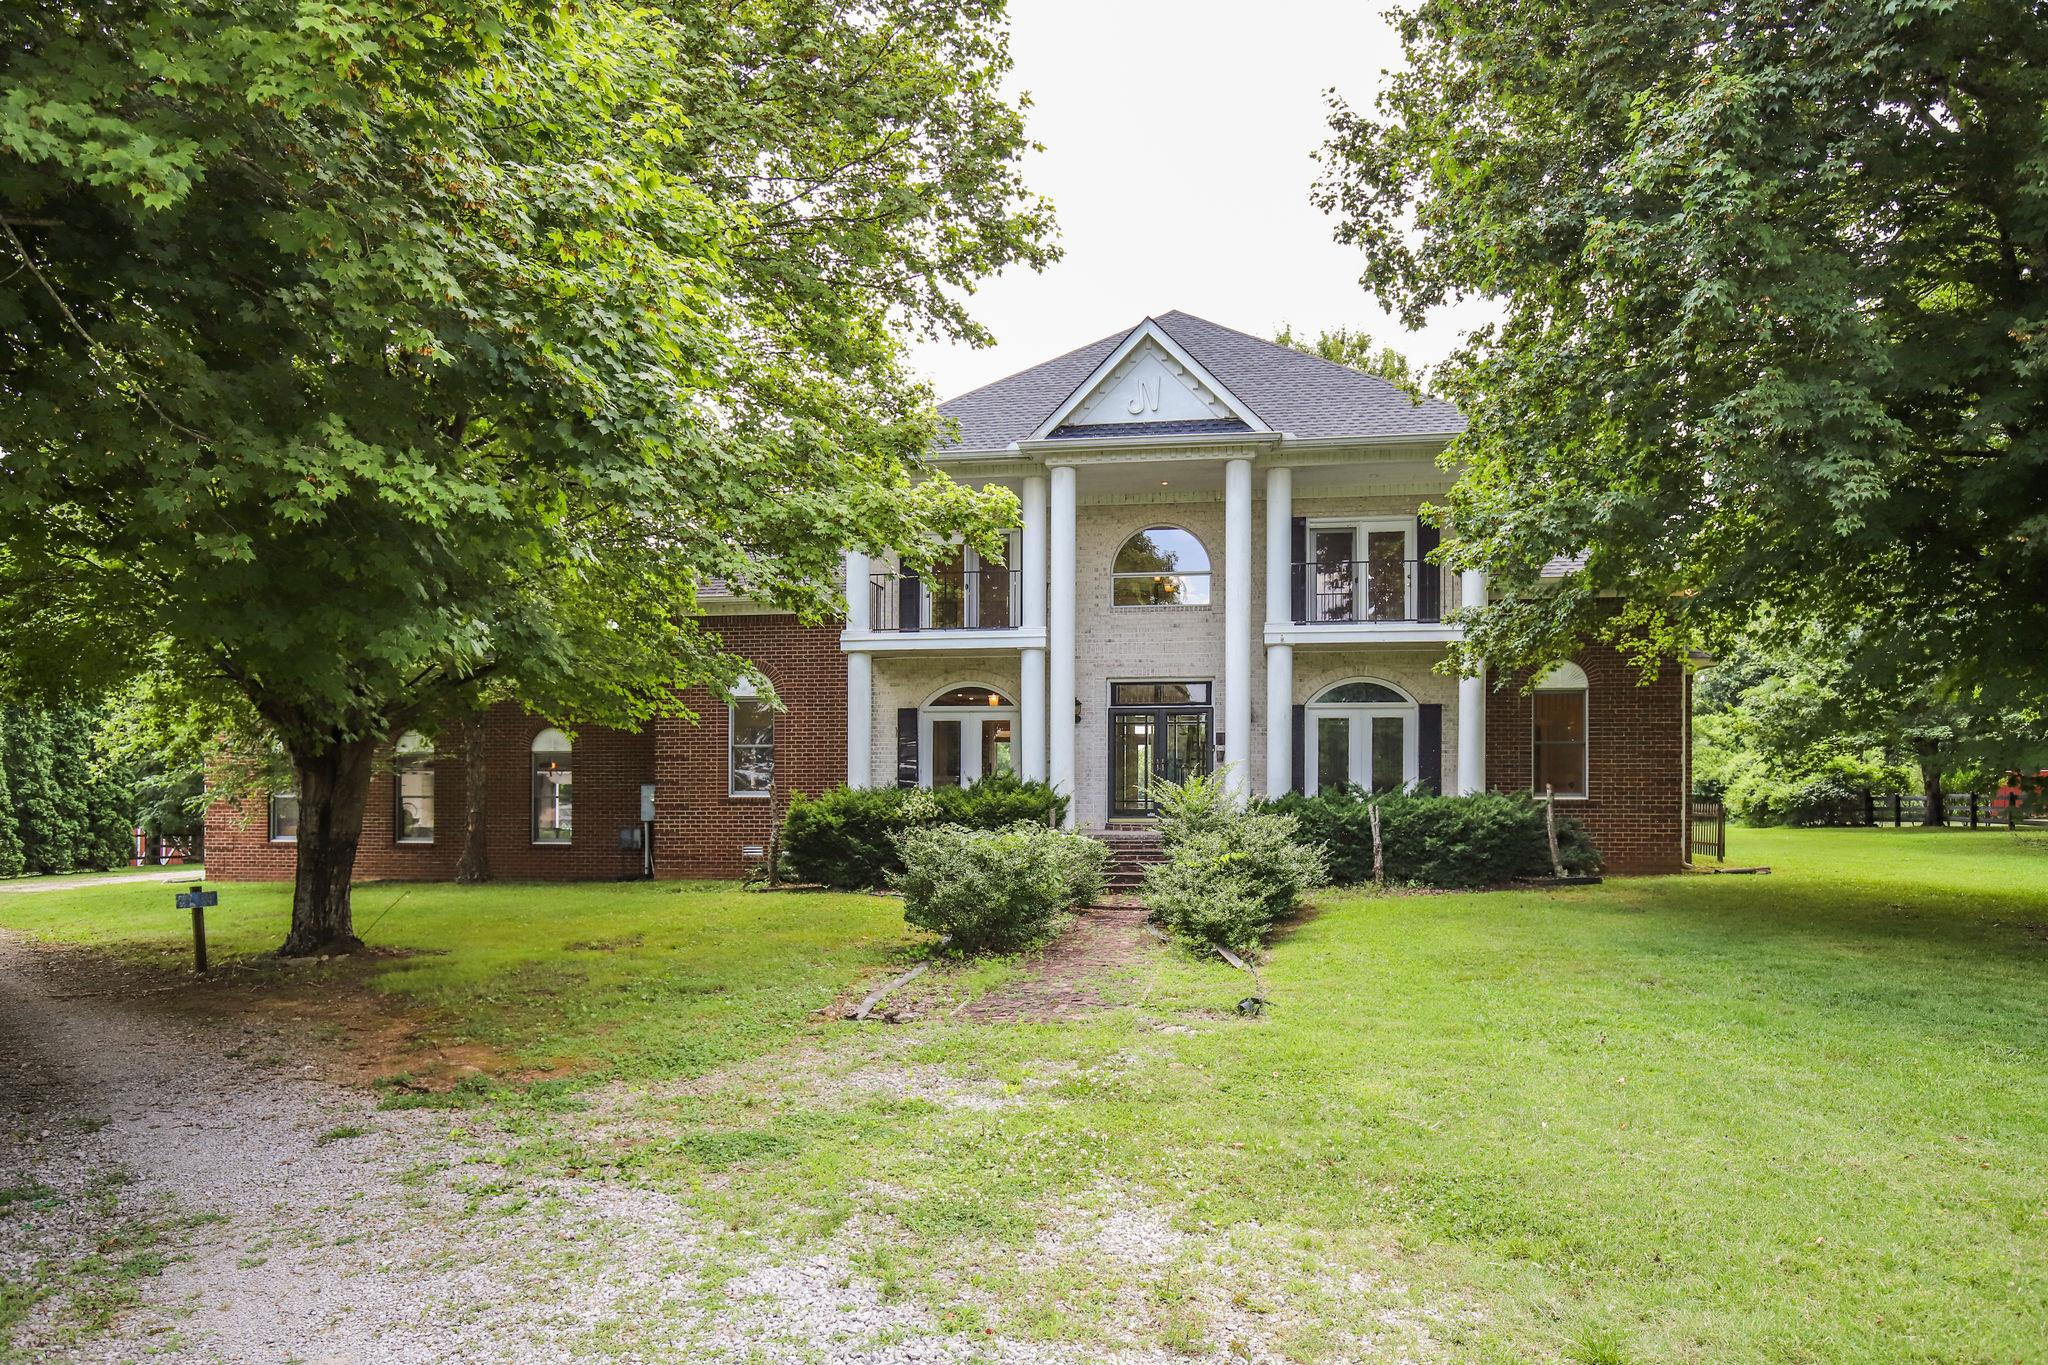 1504 Guill Rd, Mount Juliet, Tennessee